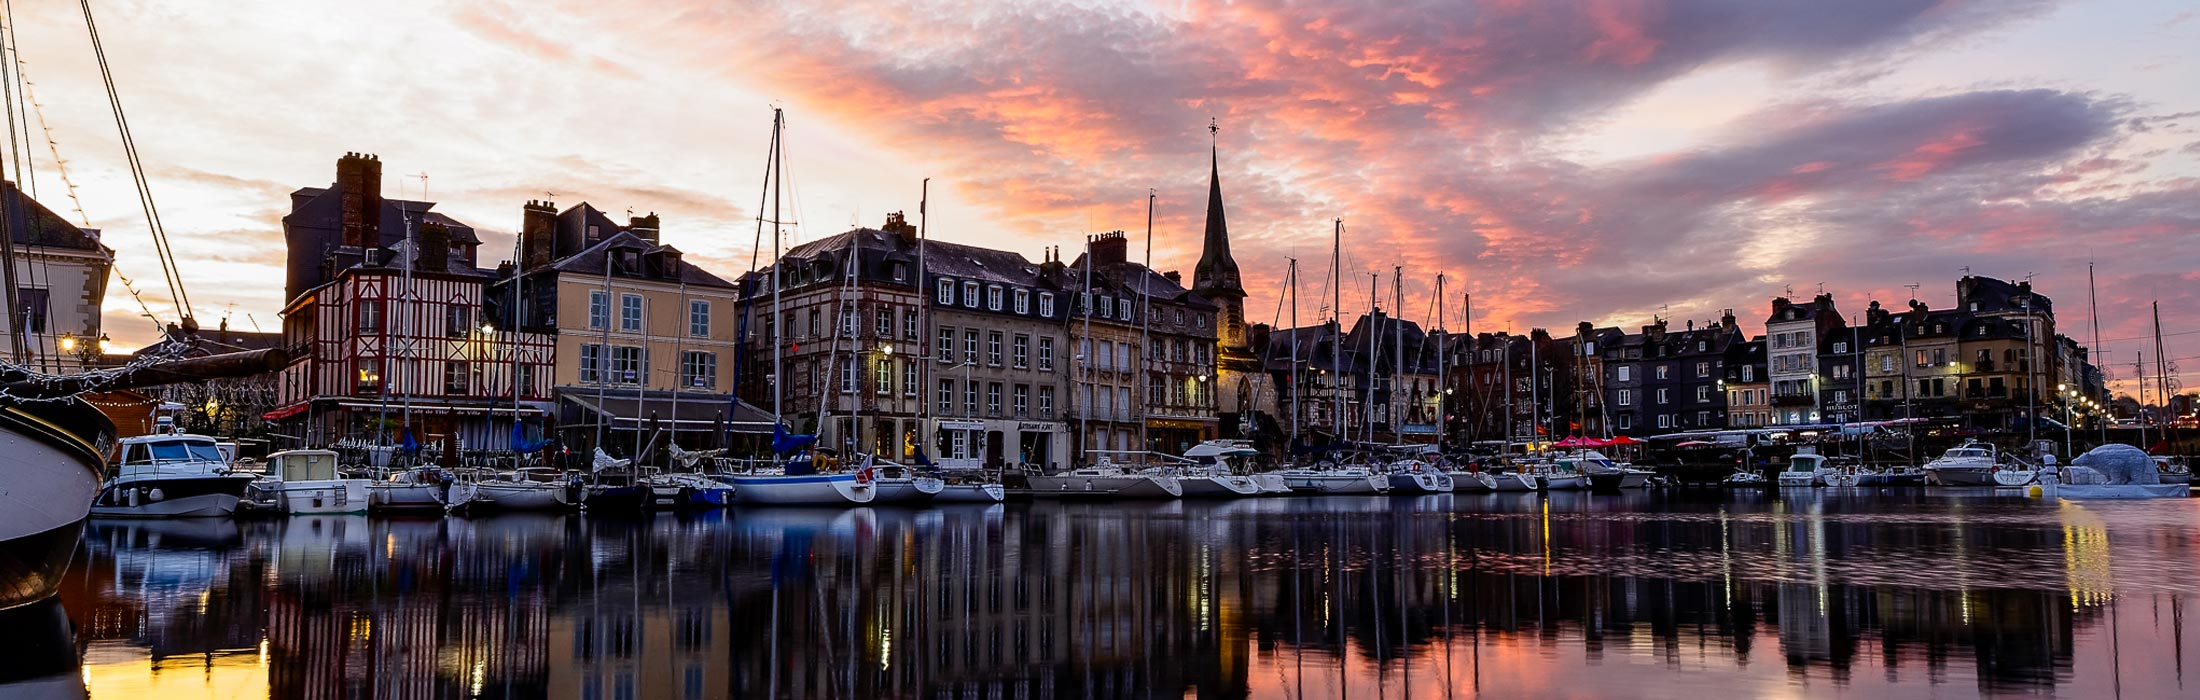 Honfleur Normandy Outlet